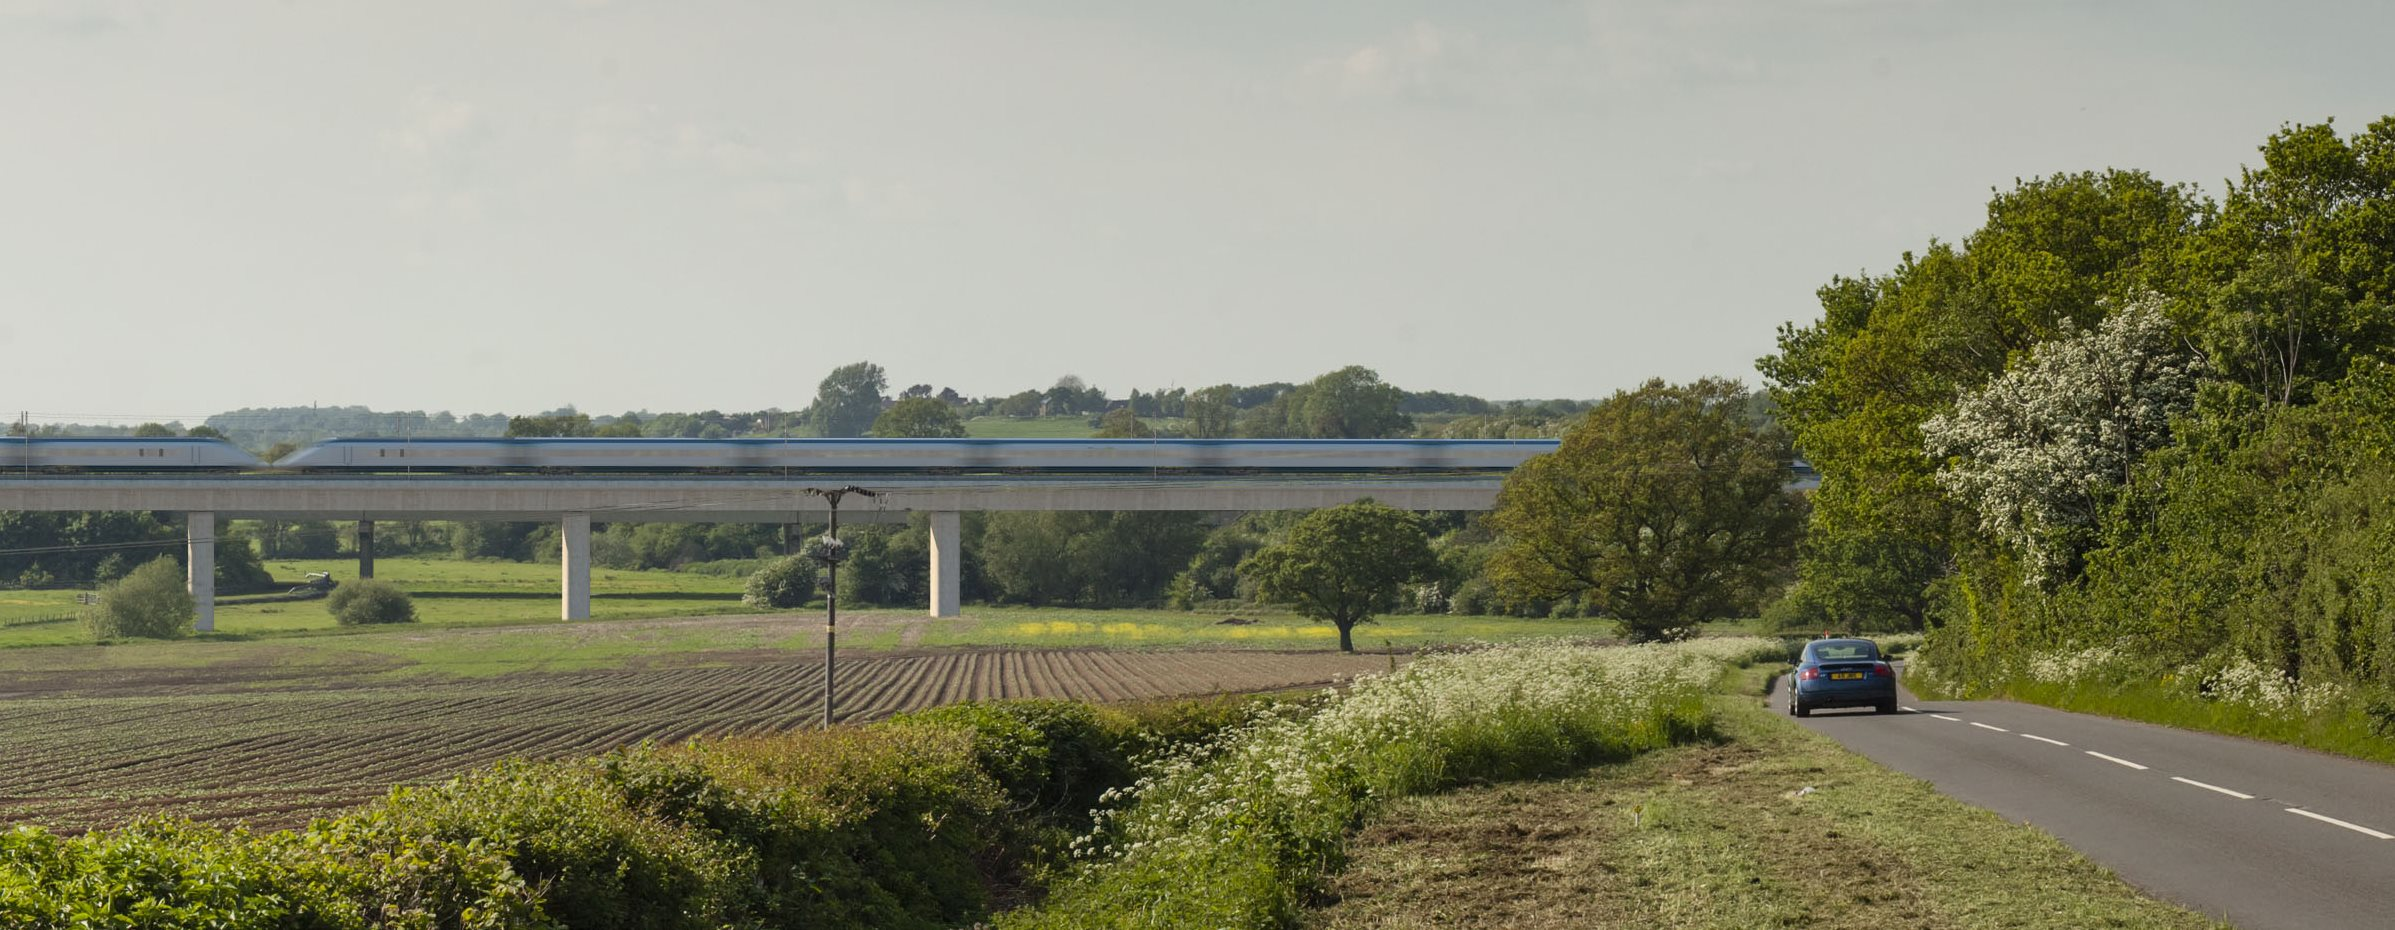 view of HS2 train crossing a rural road